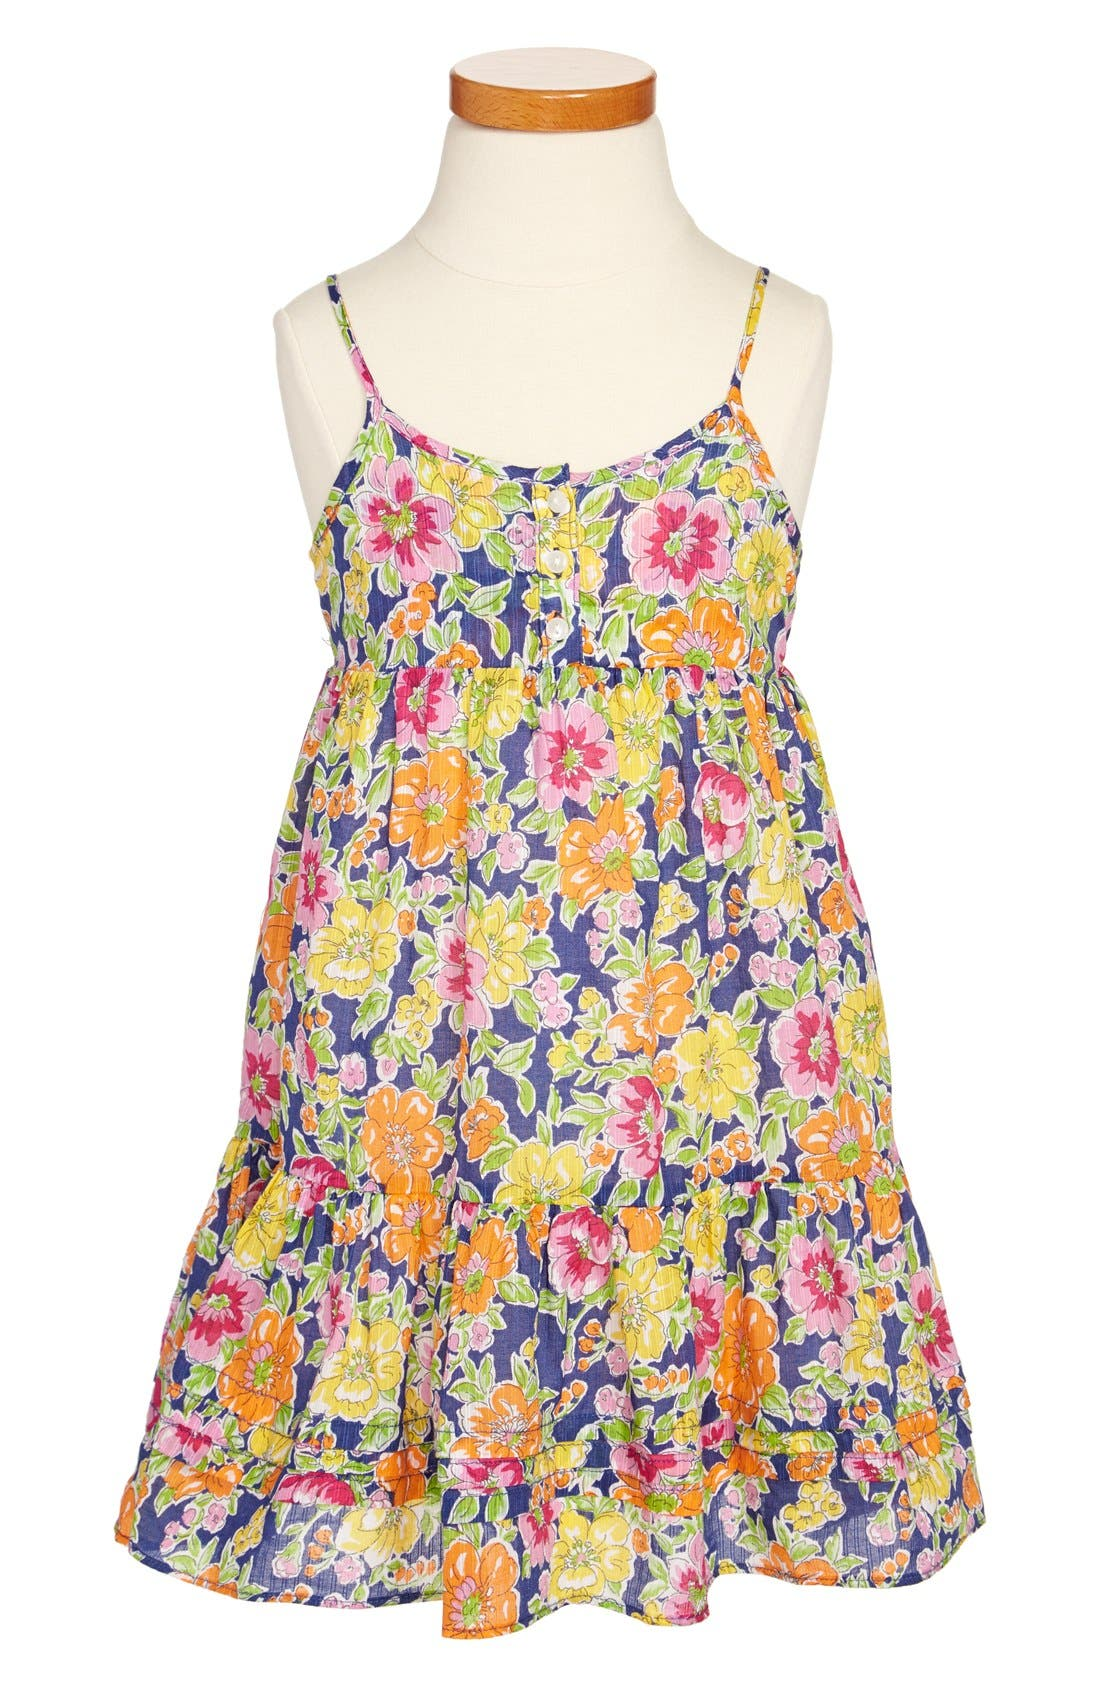 Main Image - Ralph Lauren Floral Print Cotton Sleeveless Dress (Toddler Girls)